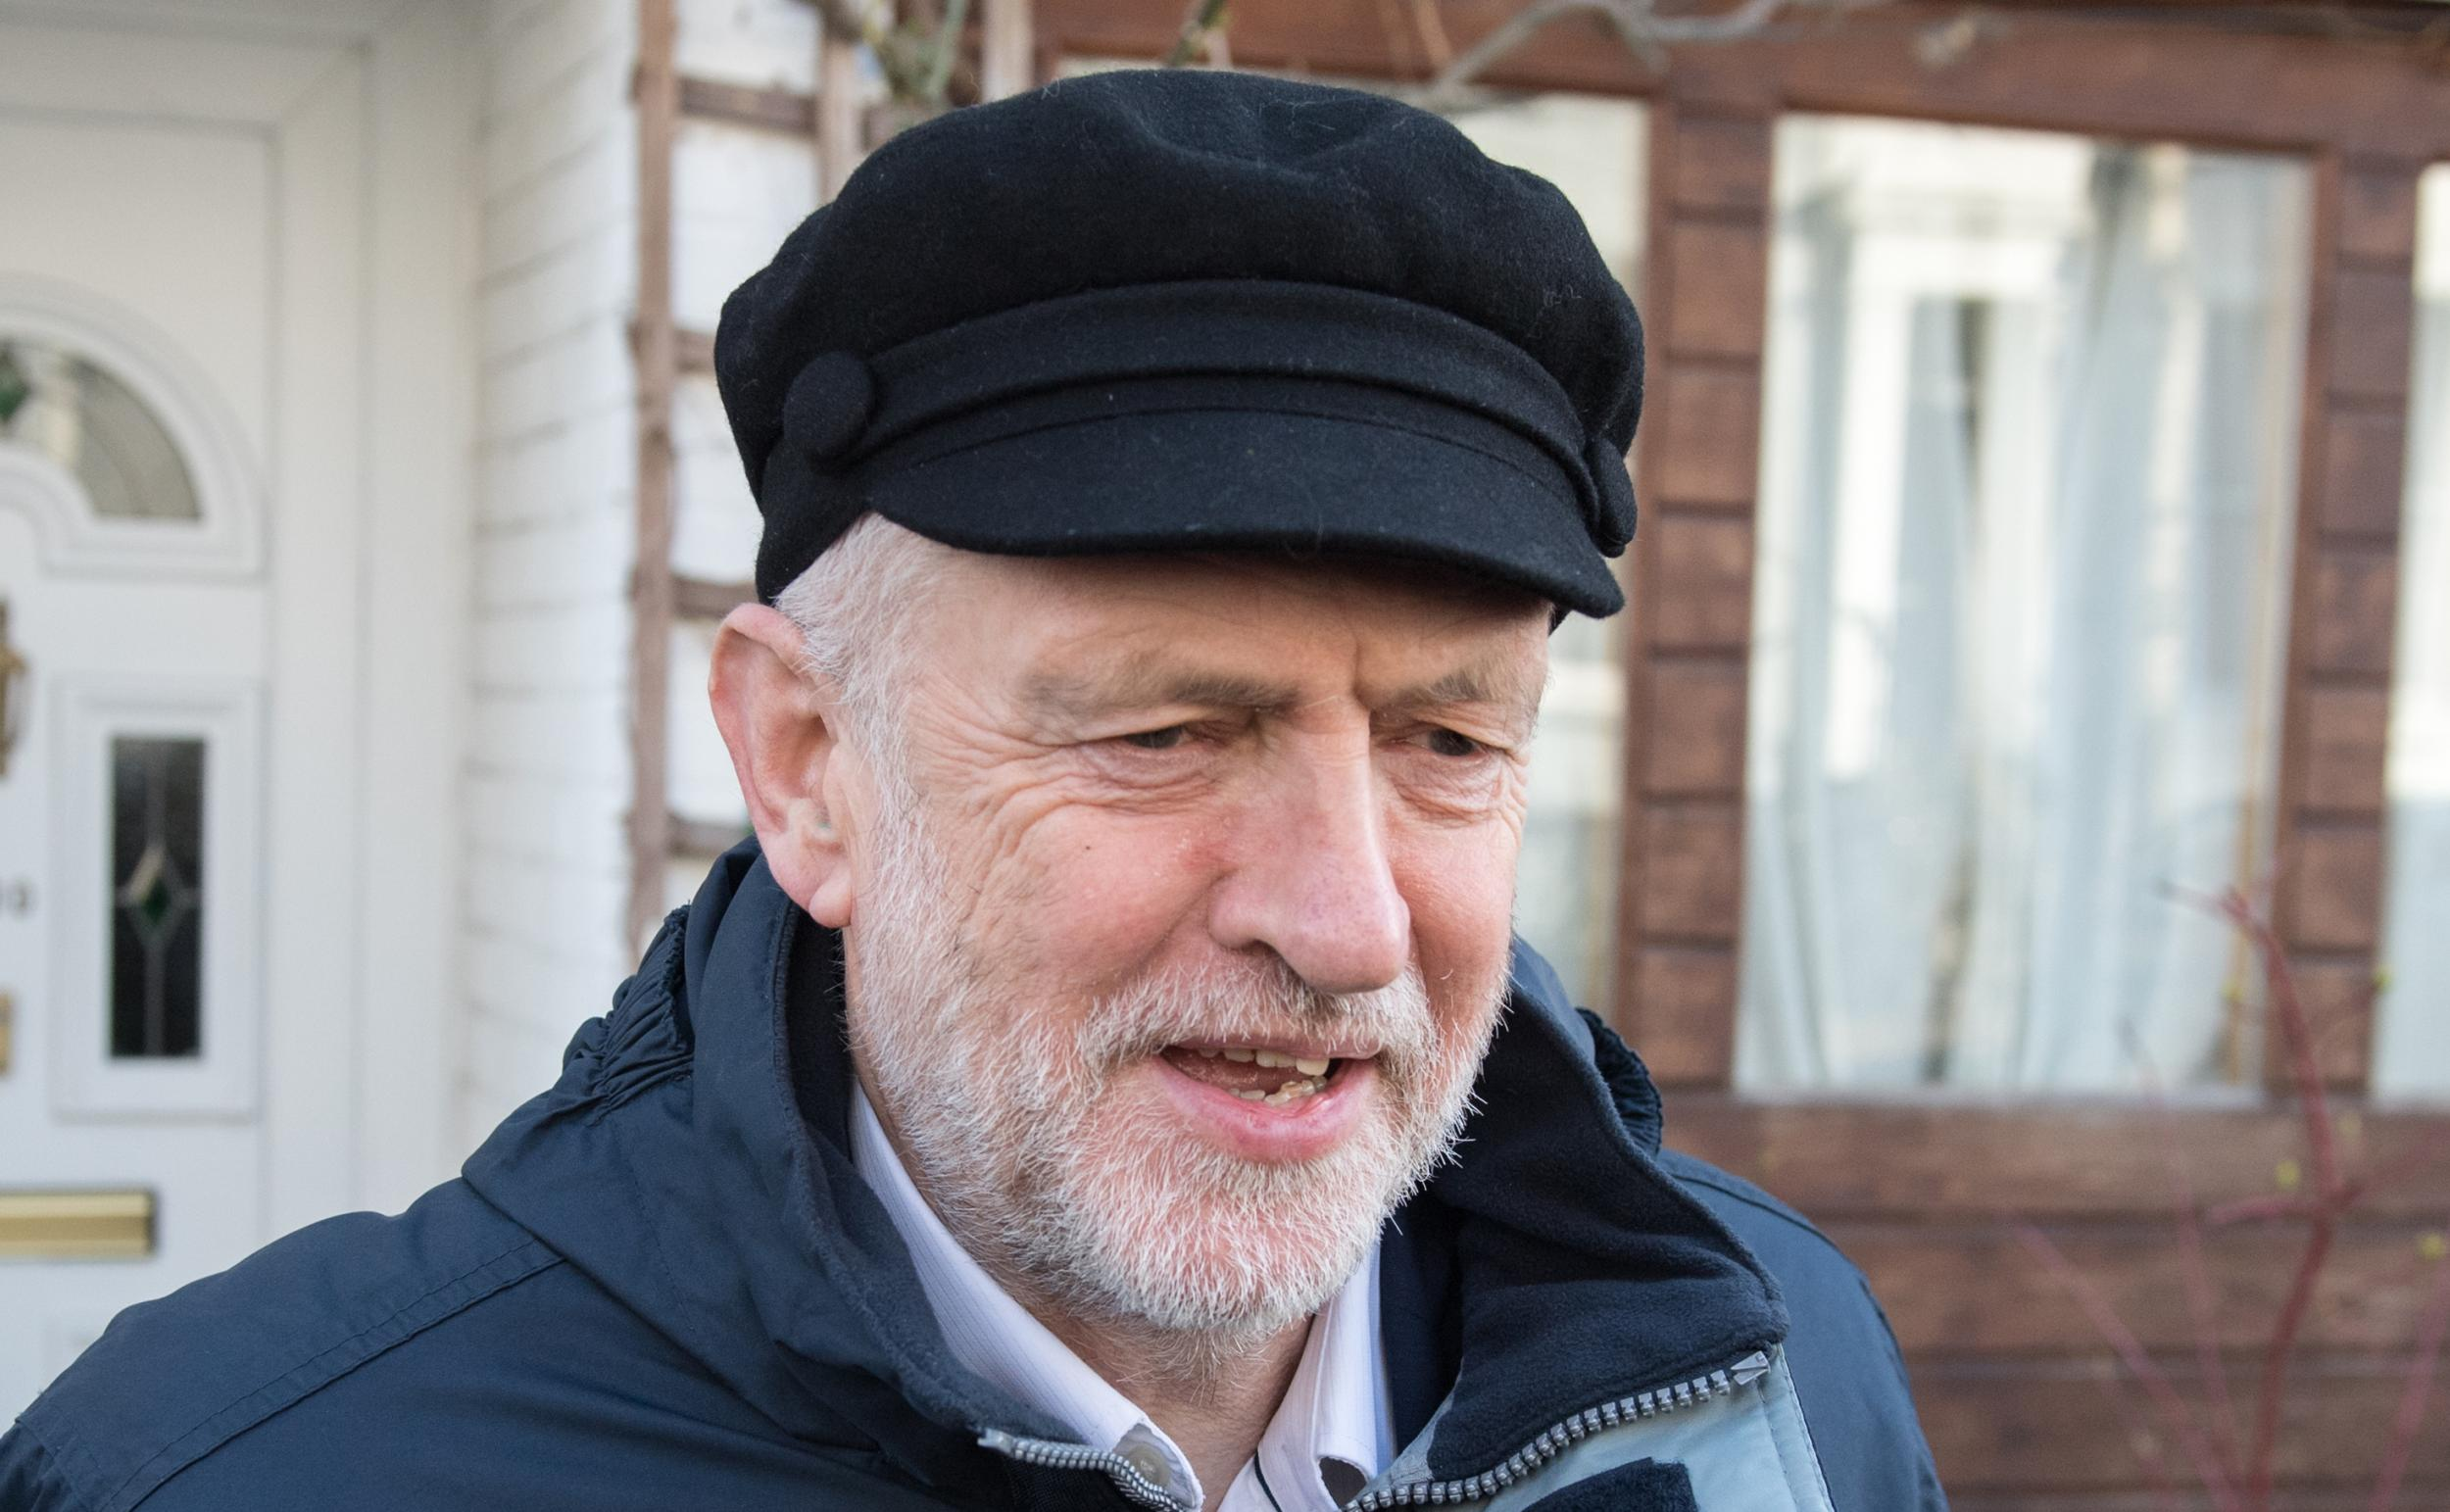 The 'traitor' accusations against Jeremy Corbyn are nothing but baseless right-wing propaganda